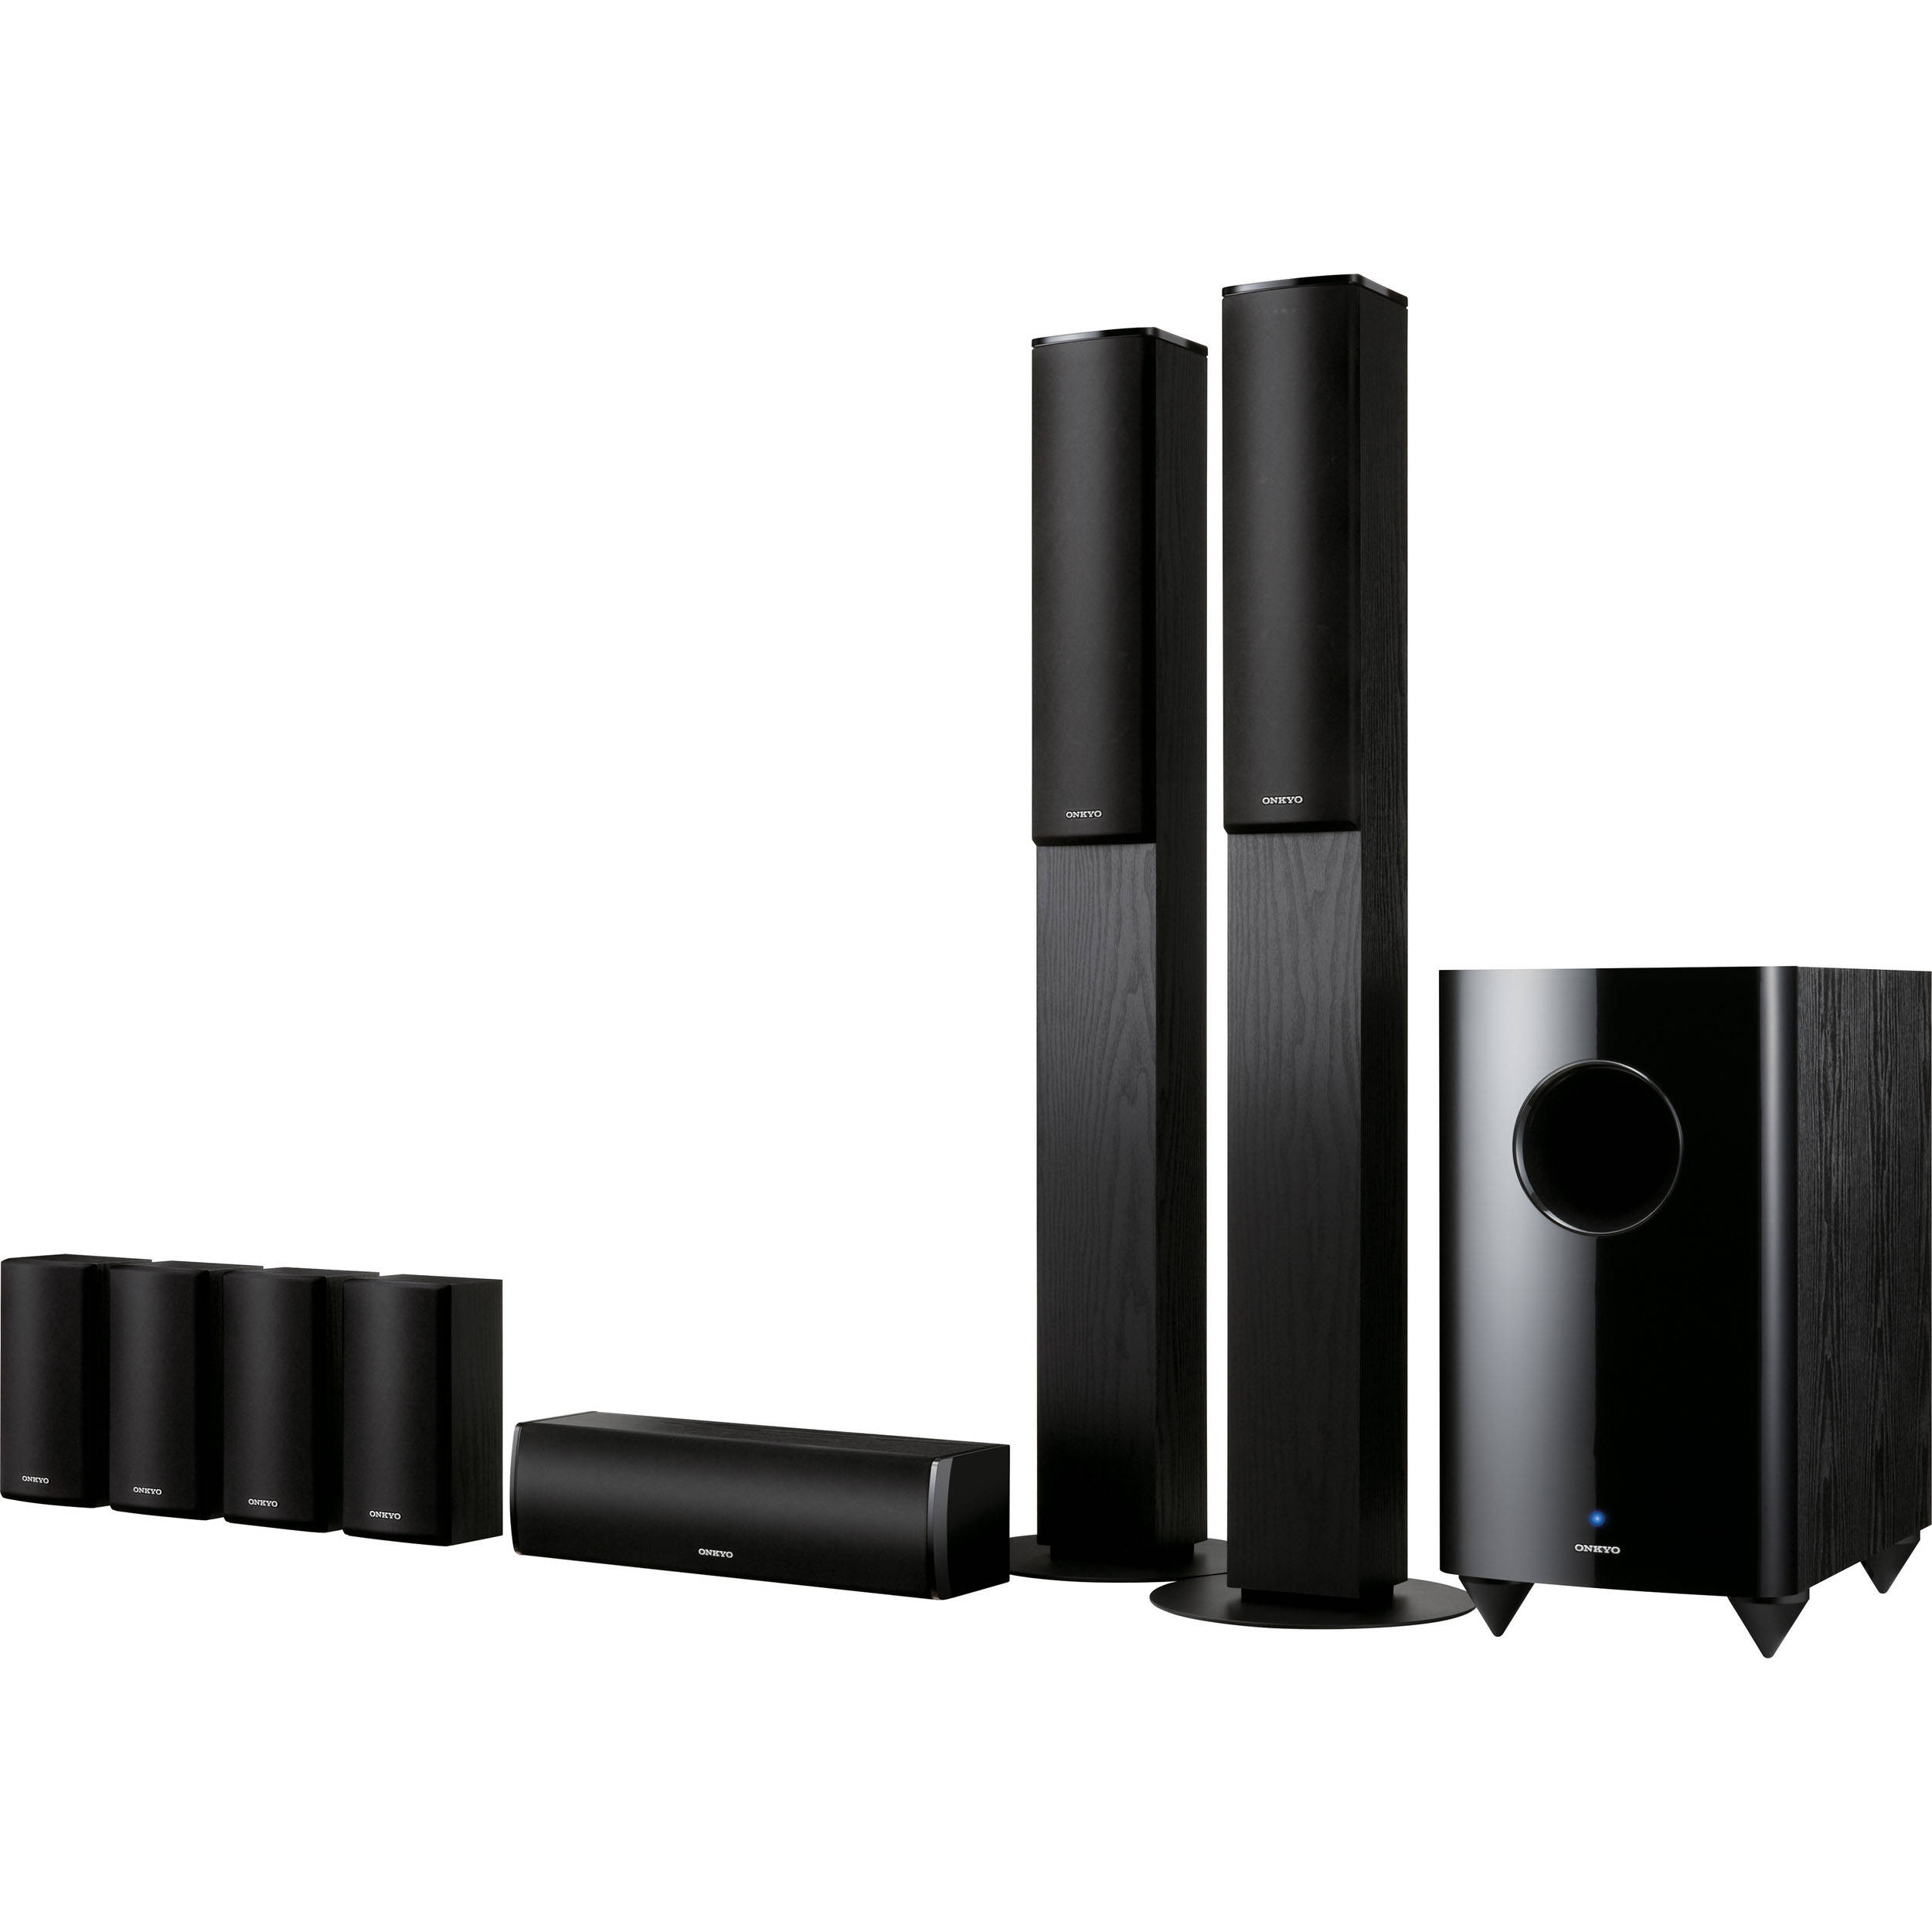 Onkyo SKS-HT870 7 1-Channel Home Theater Speaker System